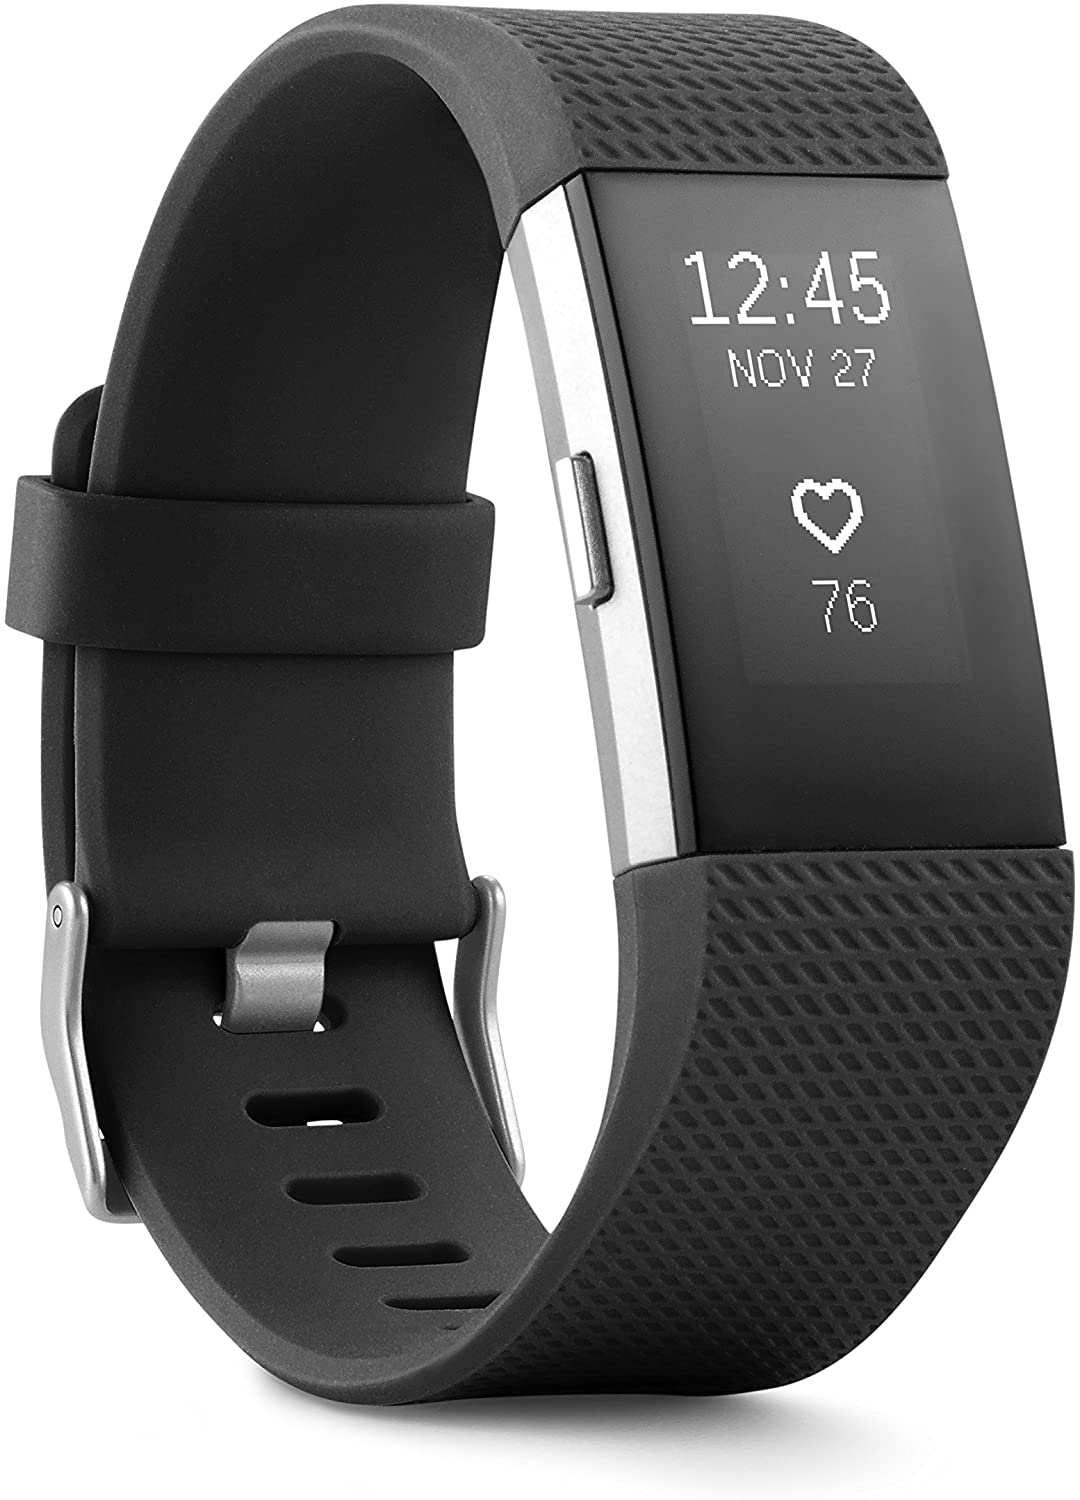 Fitbit Charge 2 Superwatch